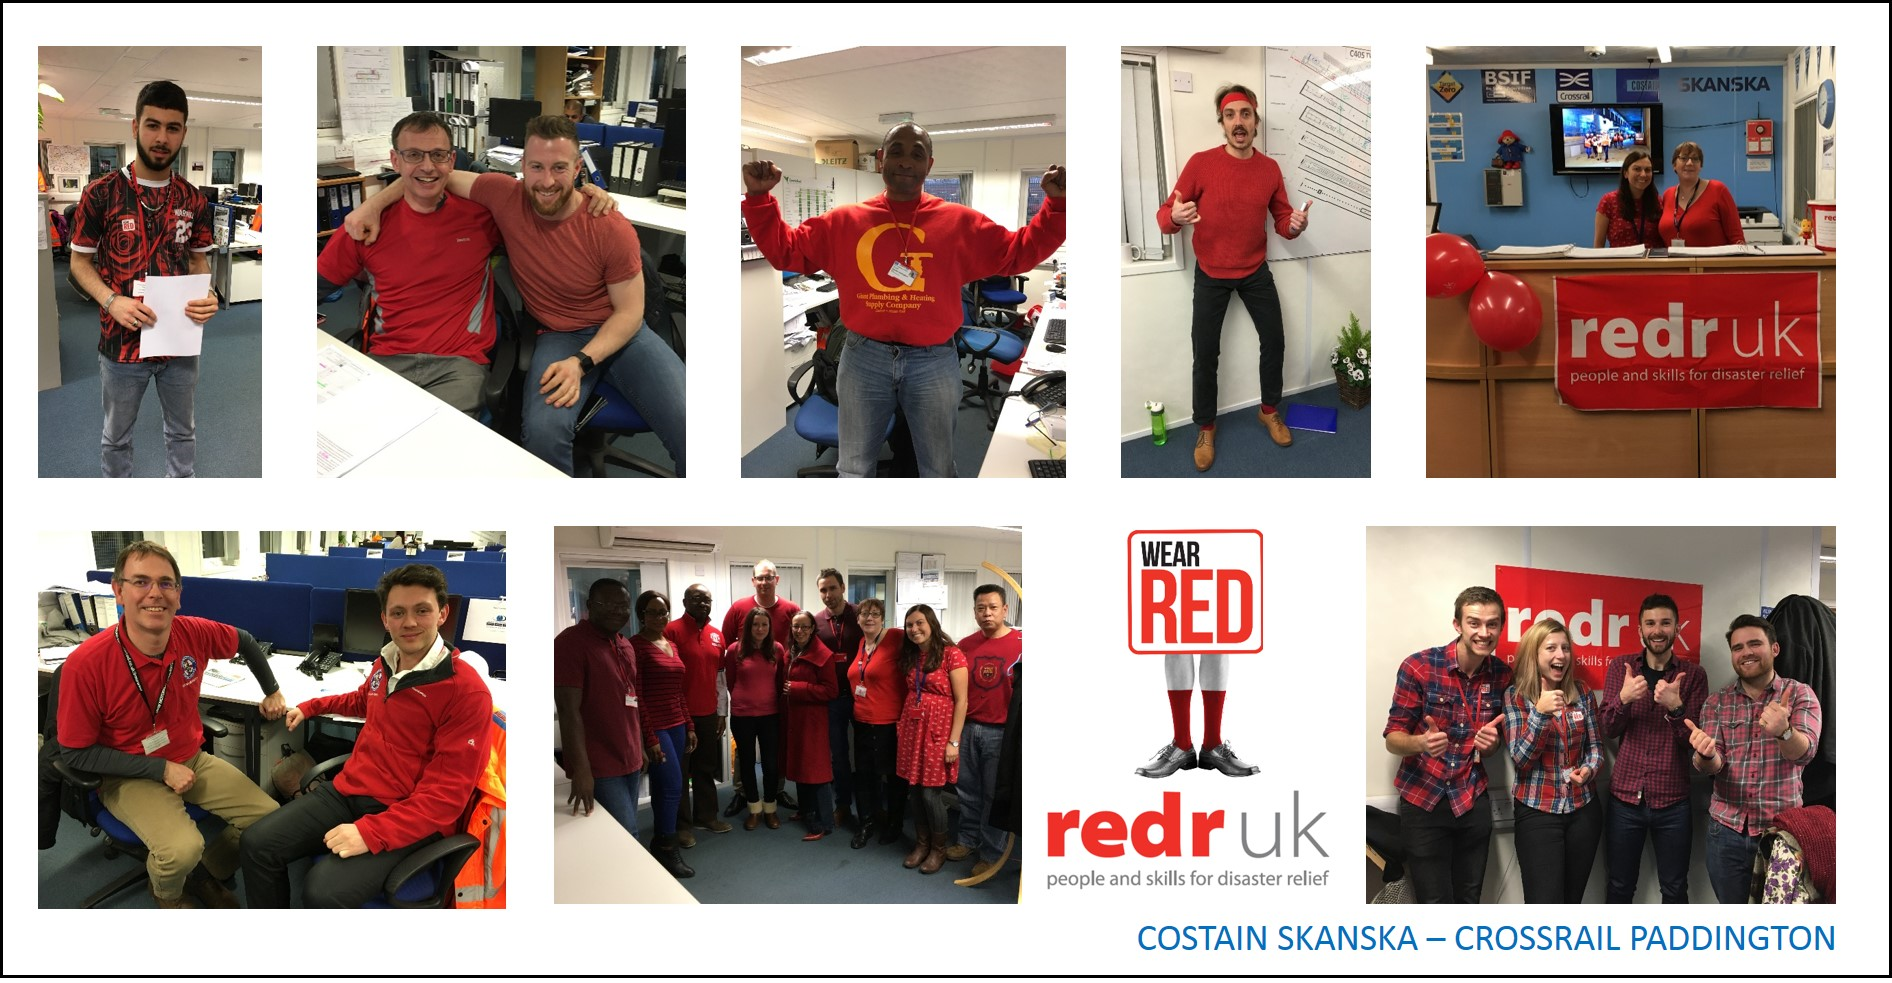 wear red for redr best practice hub